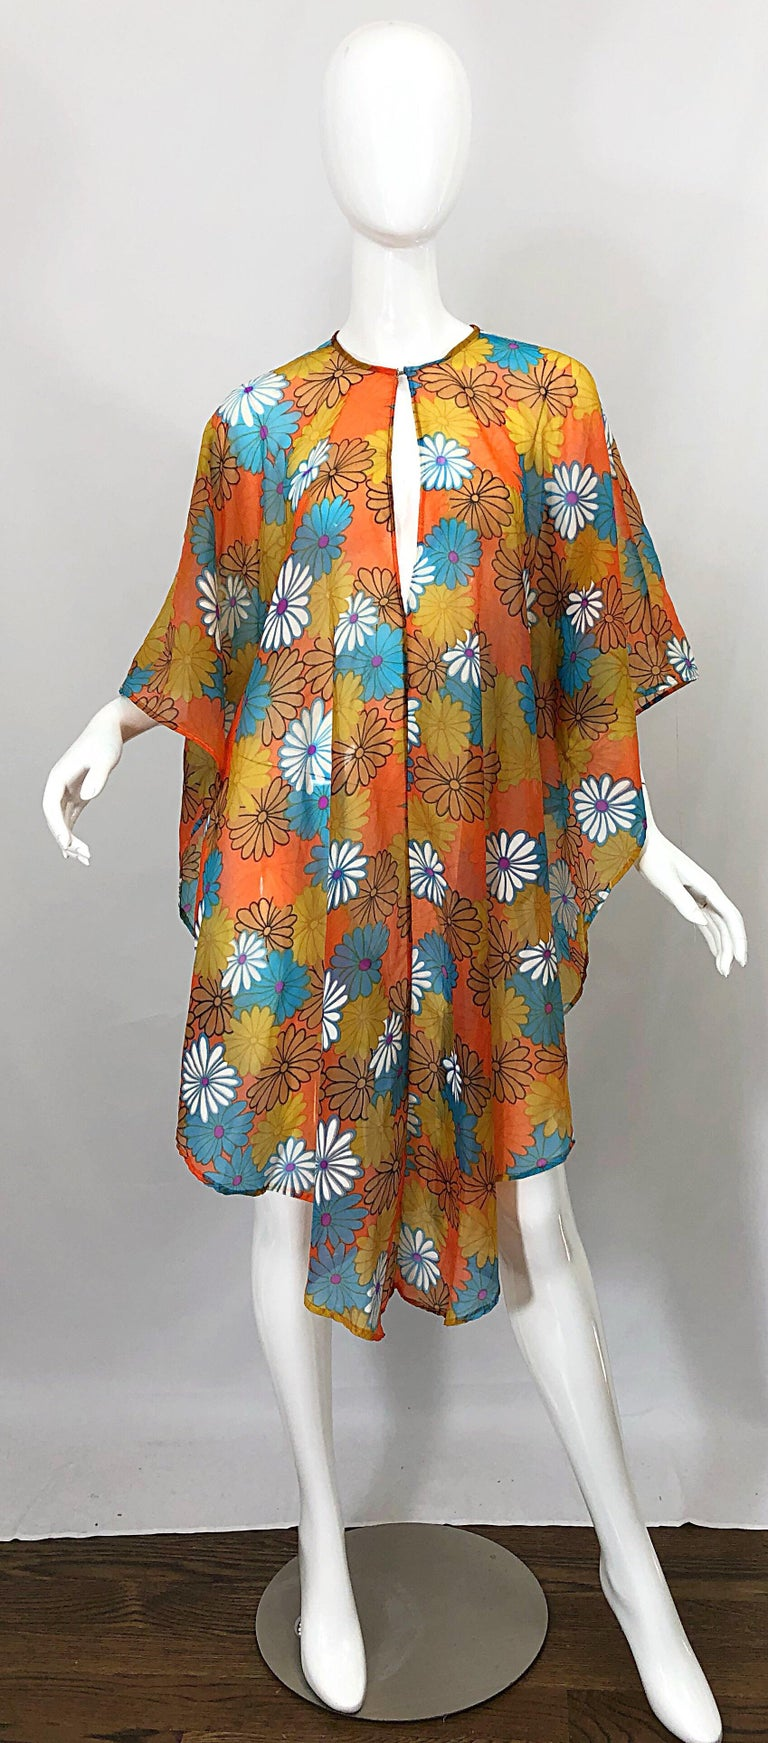 Incredible vintage 70s semi sheer chiffon flower print poncho top! Features vibrant colors in various shades of orange, blue, purple and white. Soft nylon chiffon is both soft and durable. Keyhole at neck can be worn either forward or on the back.